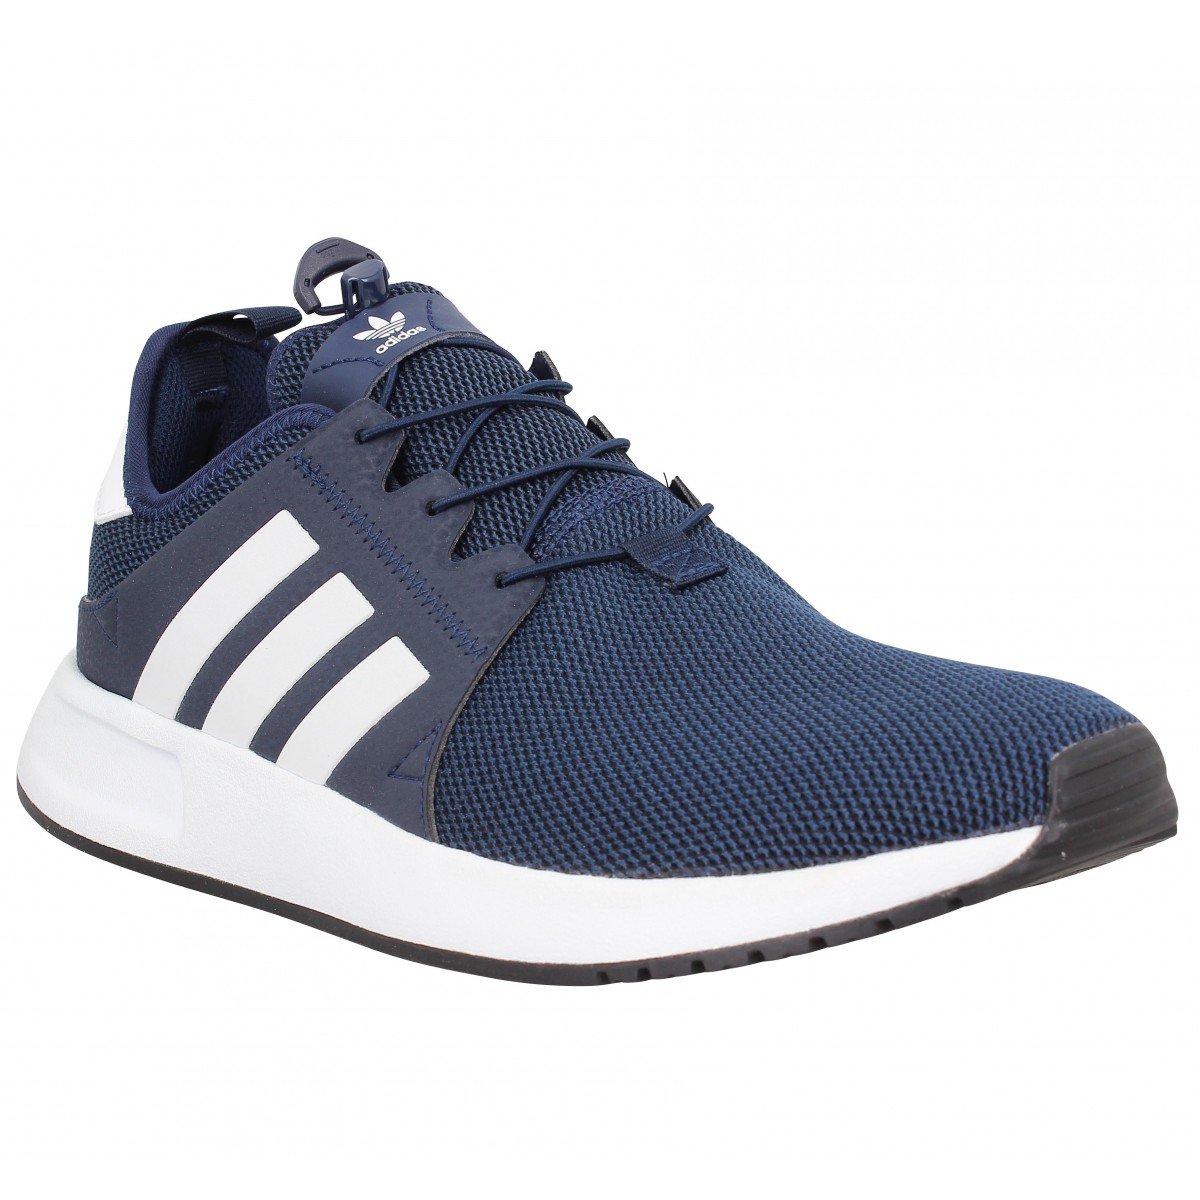 Baskets ADIDAS X PLR toile Homme Navy